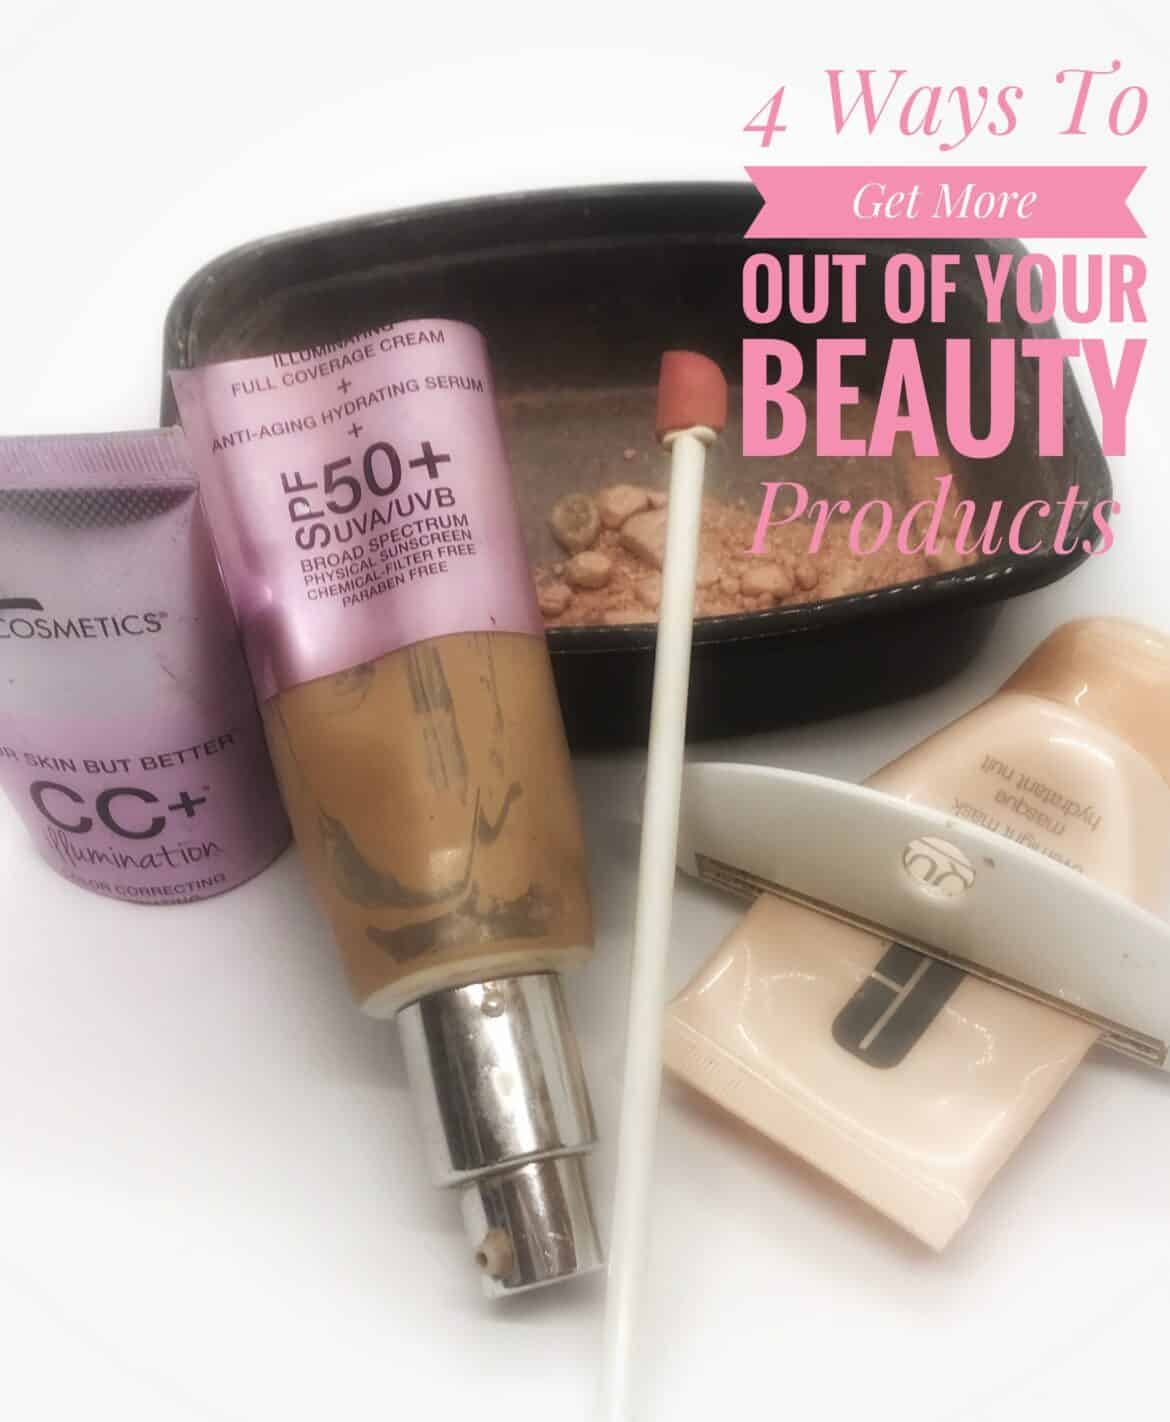 4 ways to get more out of your beauty products